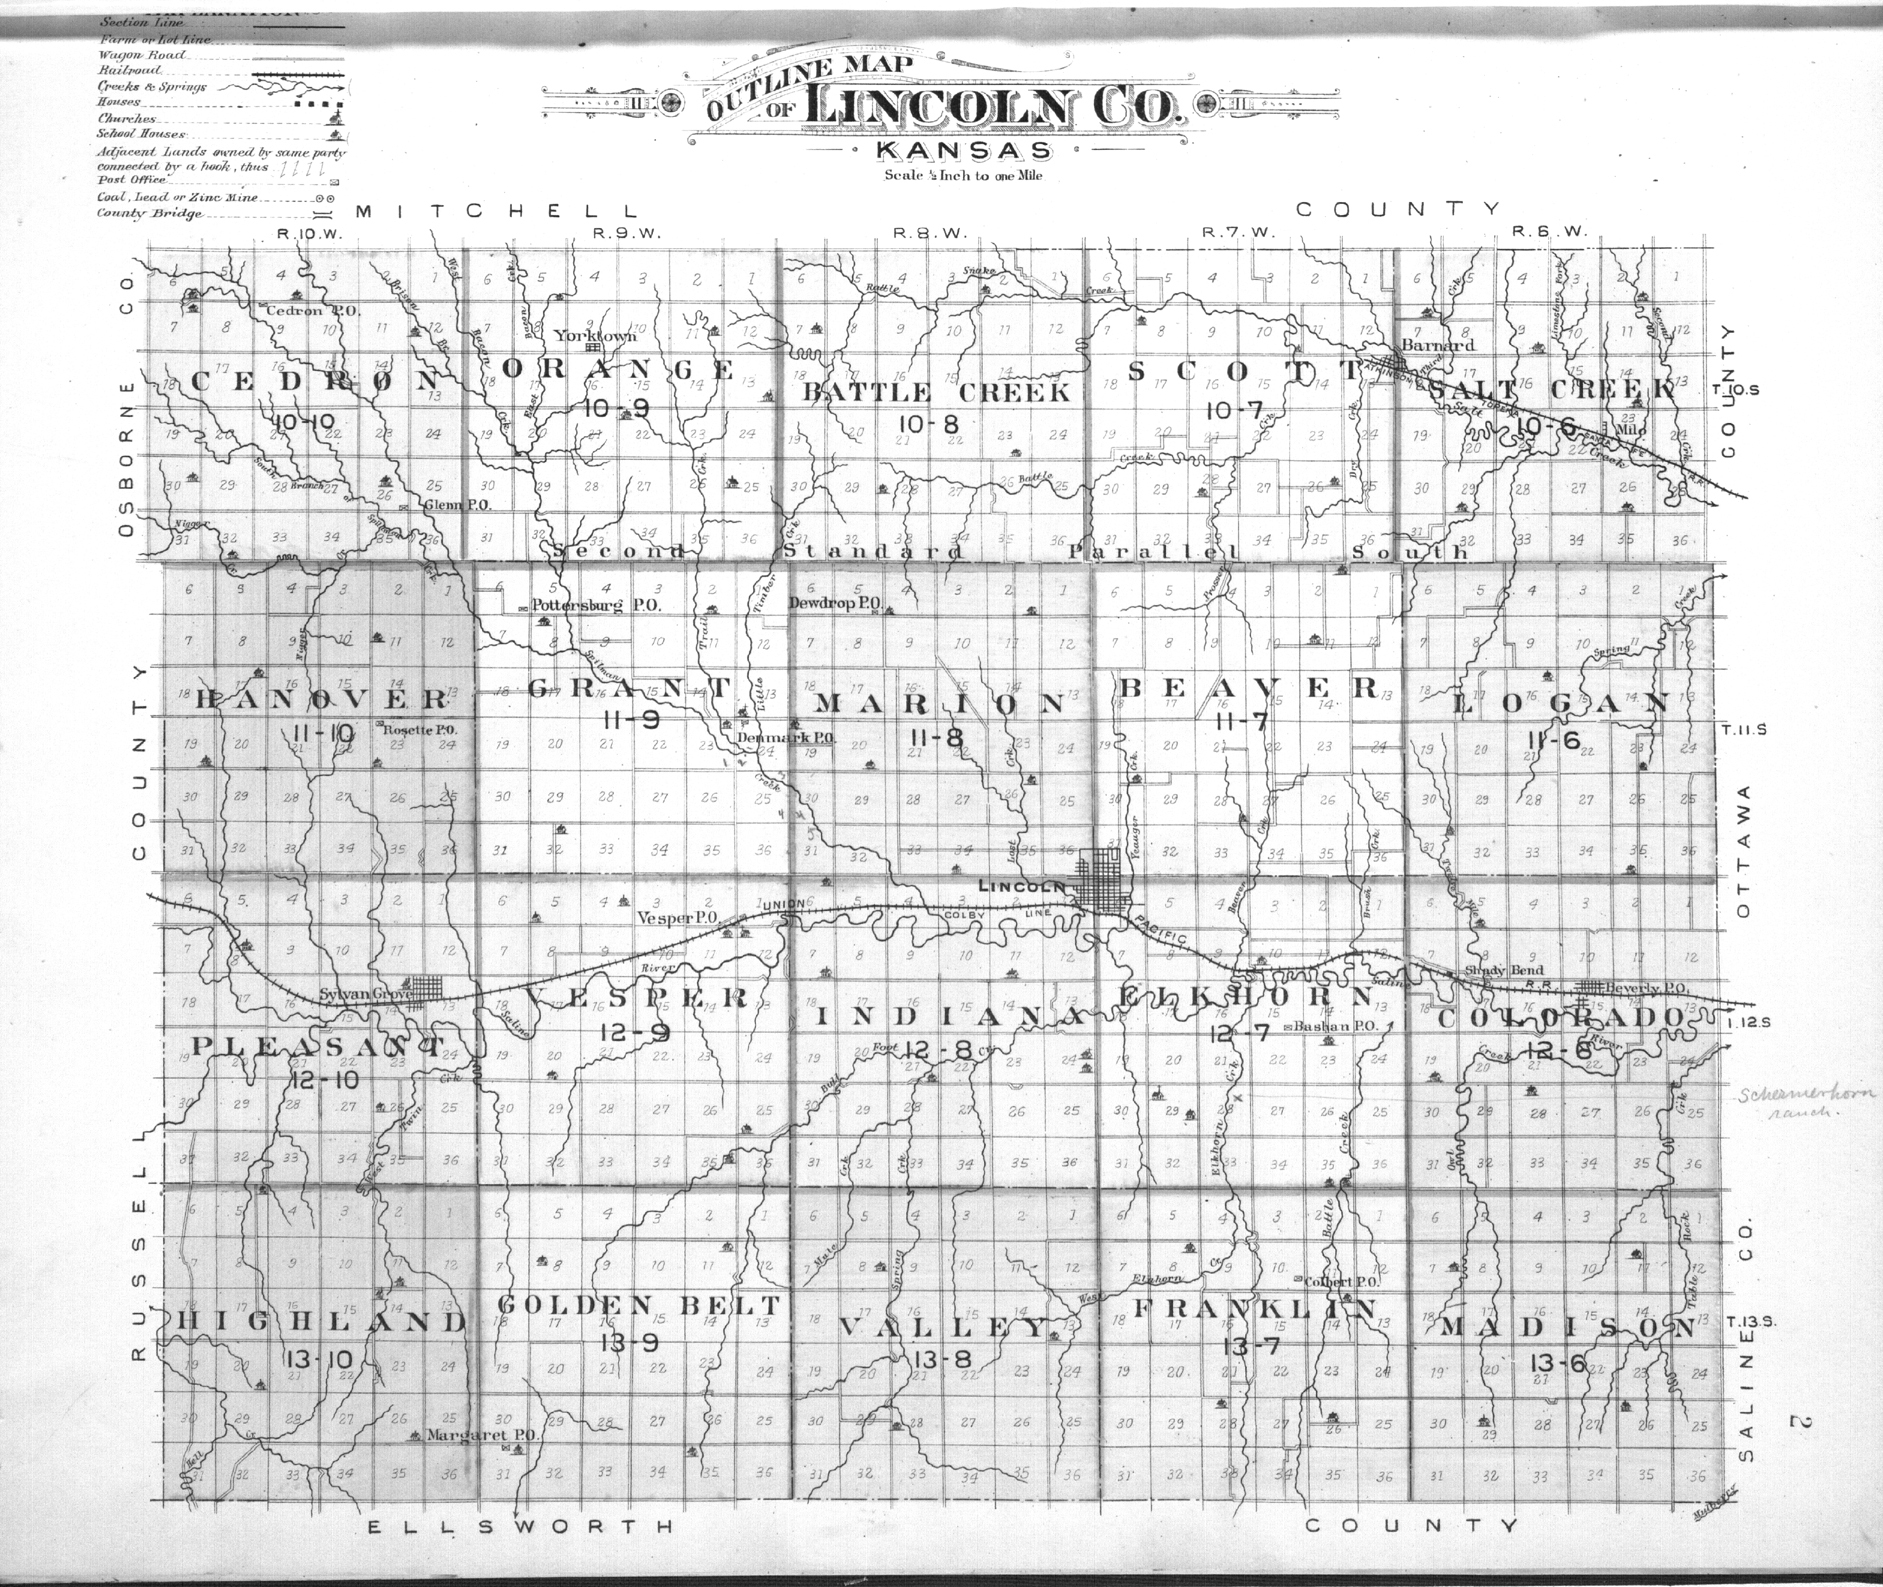 Plat book of Lincoln County, Kansas - 2